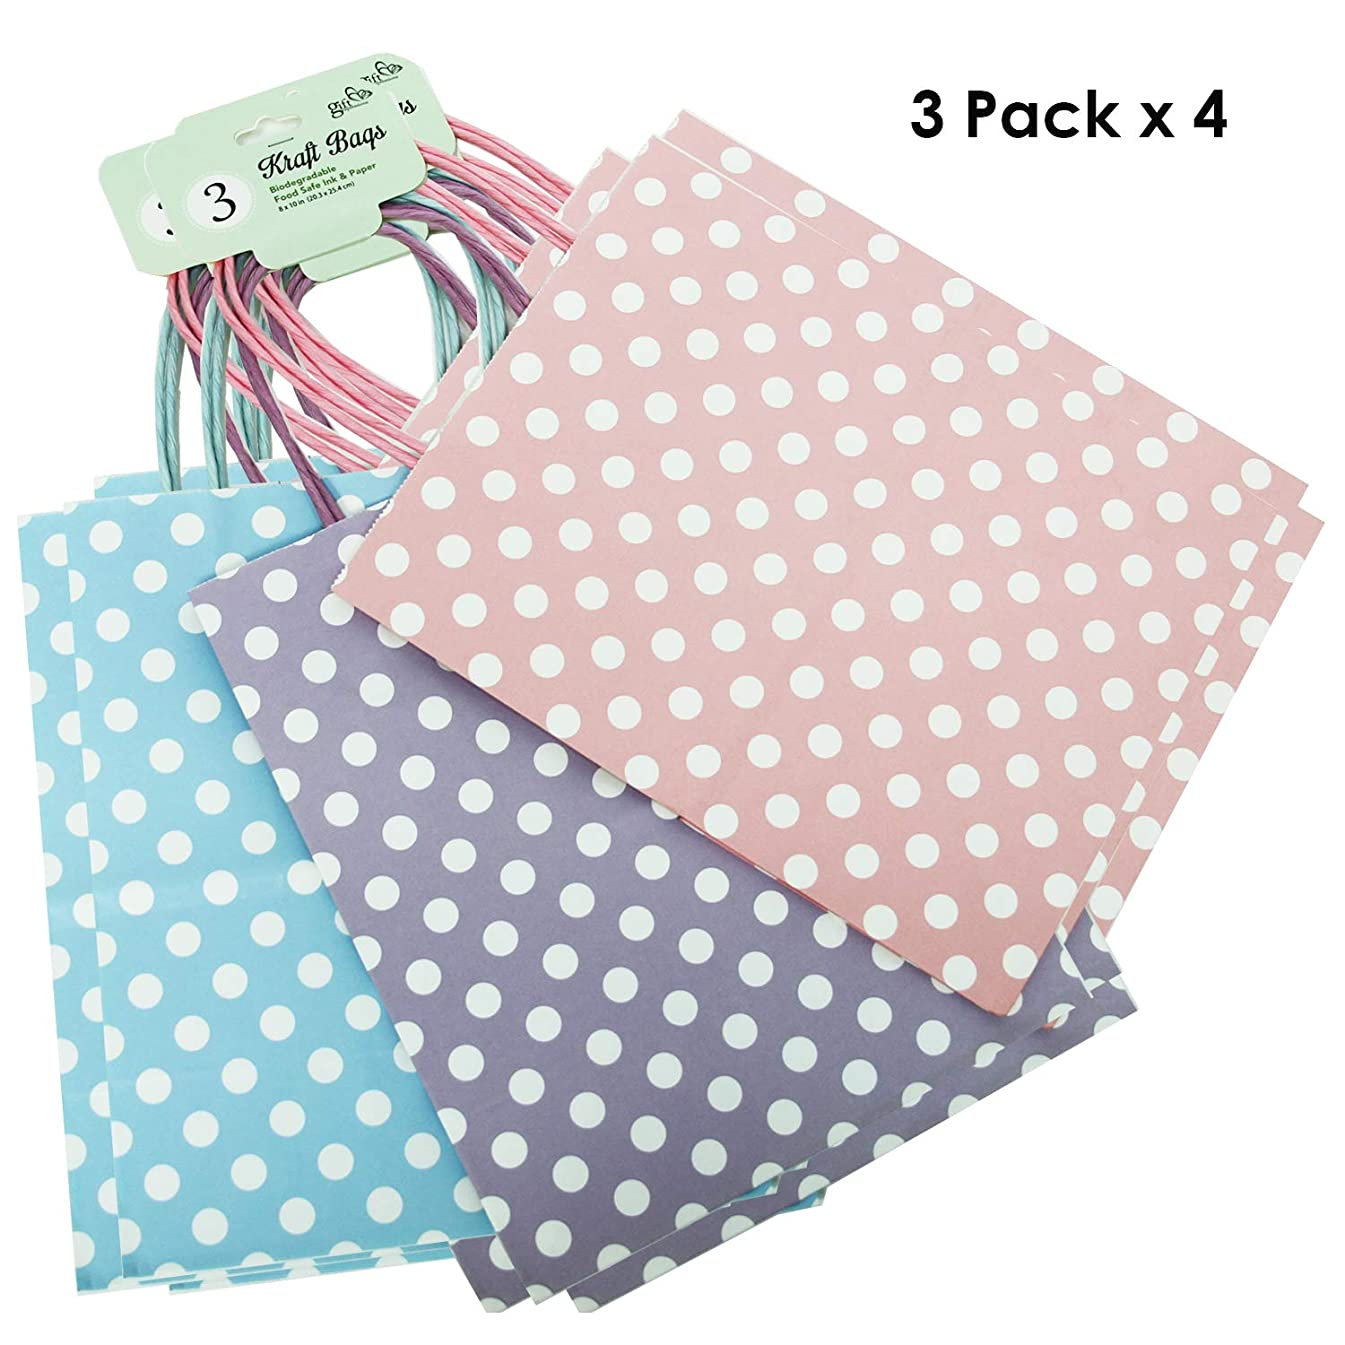 12CT Medium Pastel(3 Color x 4) Polka DOT Biodegradable, Food Safe Ink & Paper, Premium Quality Paper (Sturdy & Thicker), Kraft Bag with Colored Sturdy Handle (Polka Dot Medium, Pastel 3 Color)